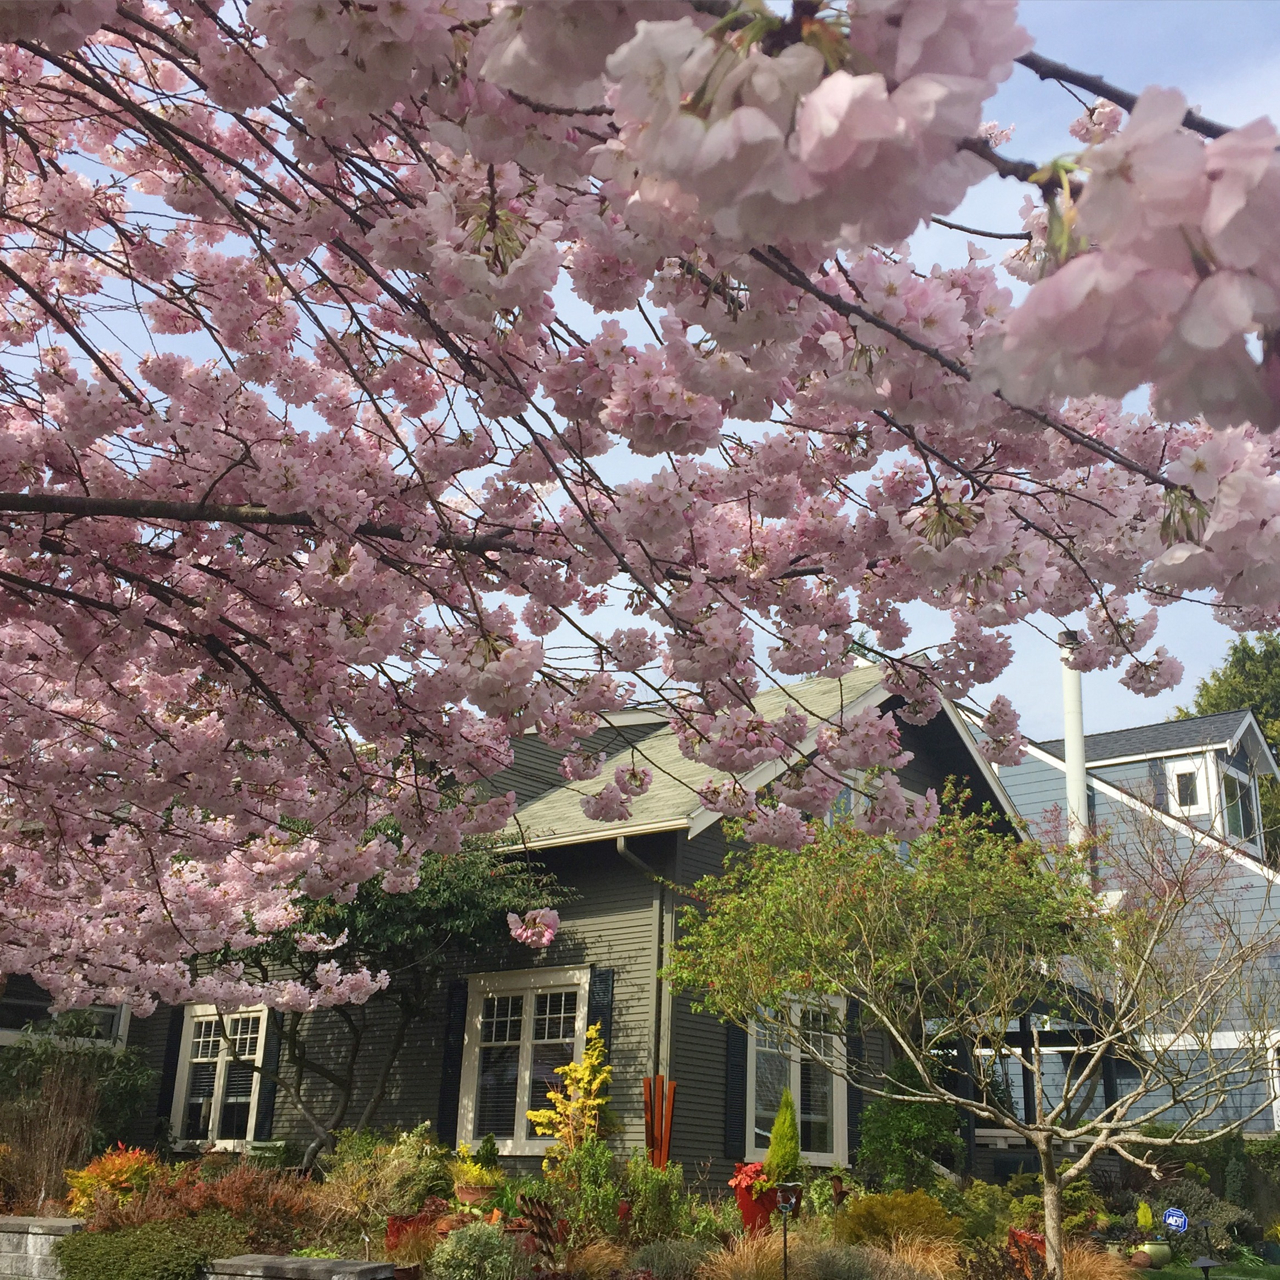 Cherry blossoms blooming in West Seattle